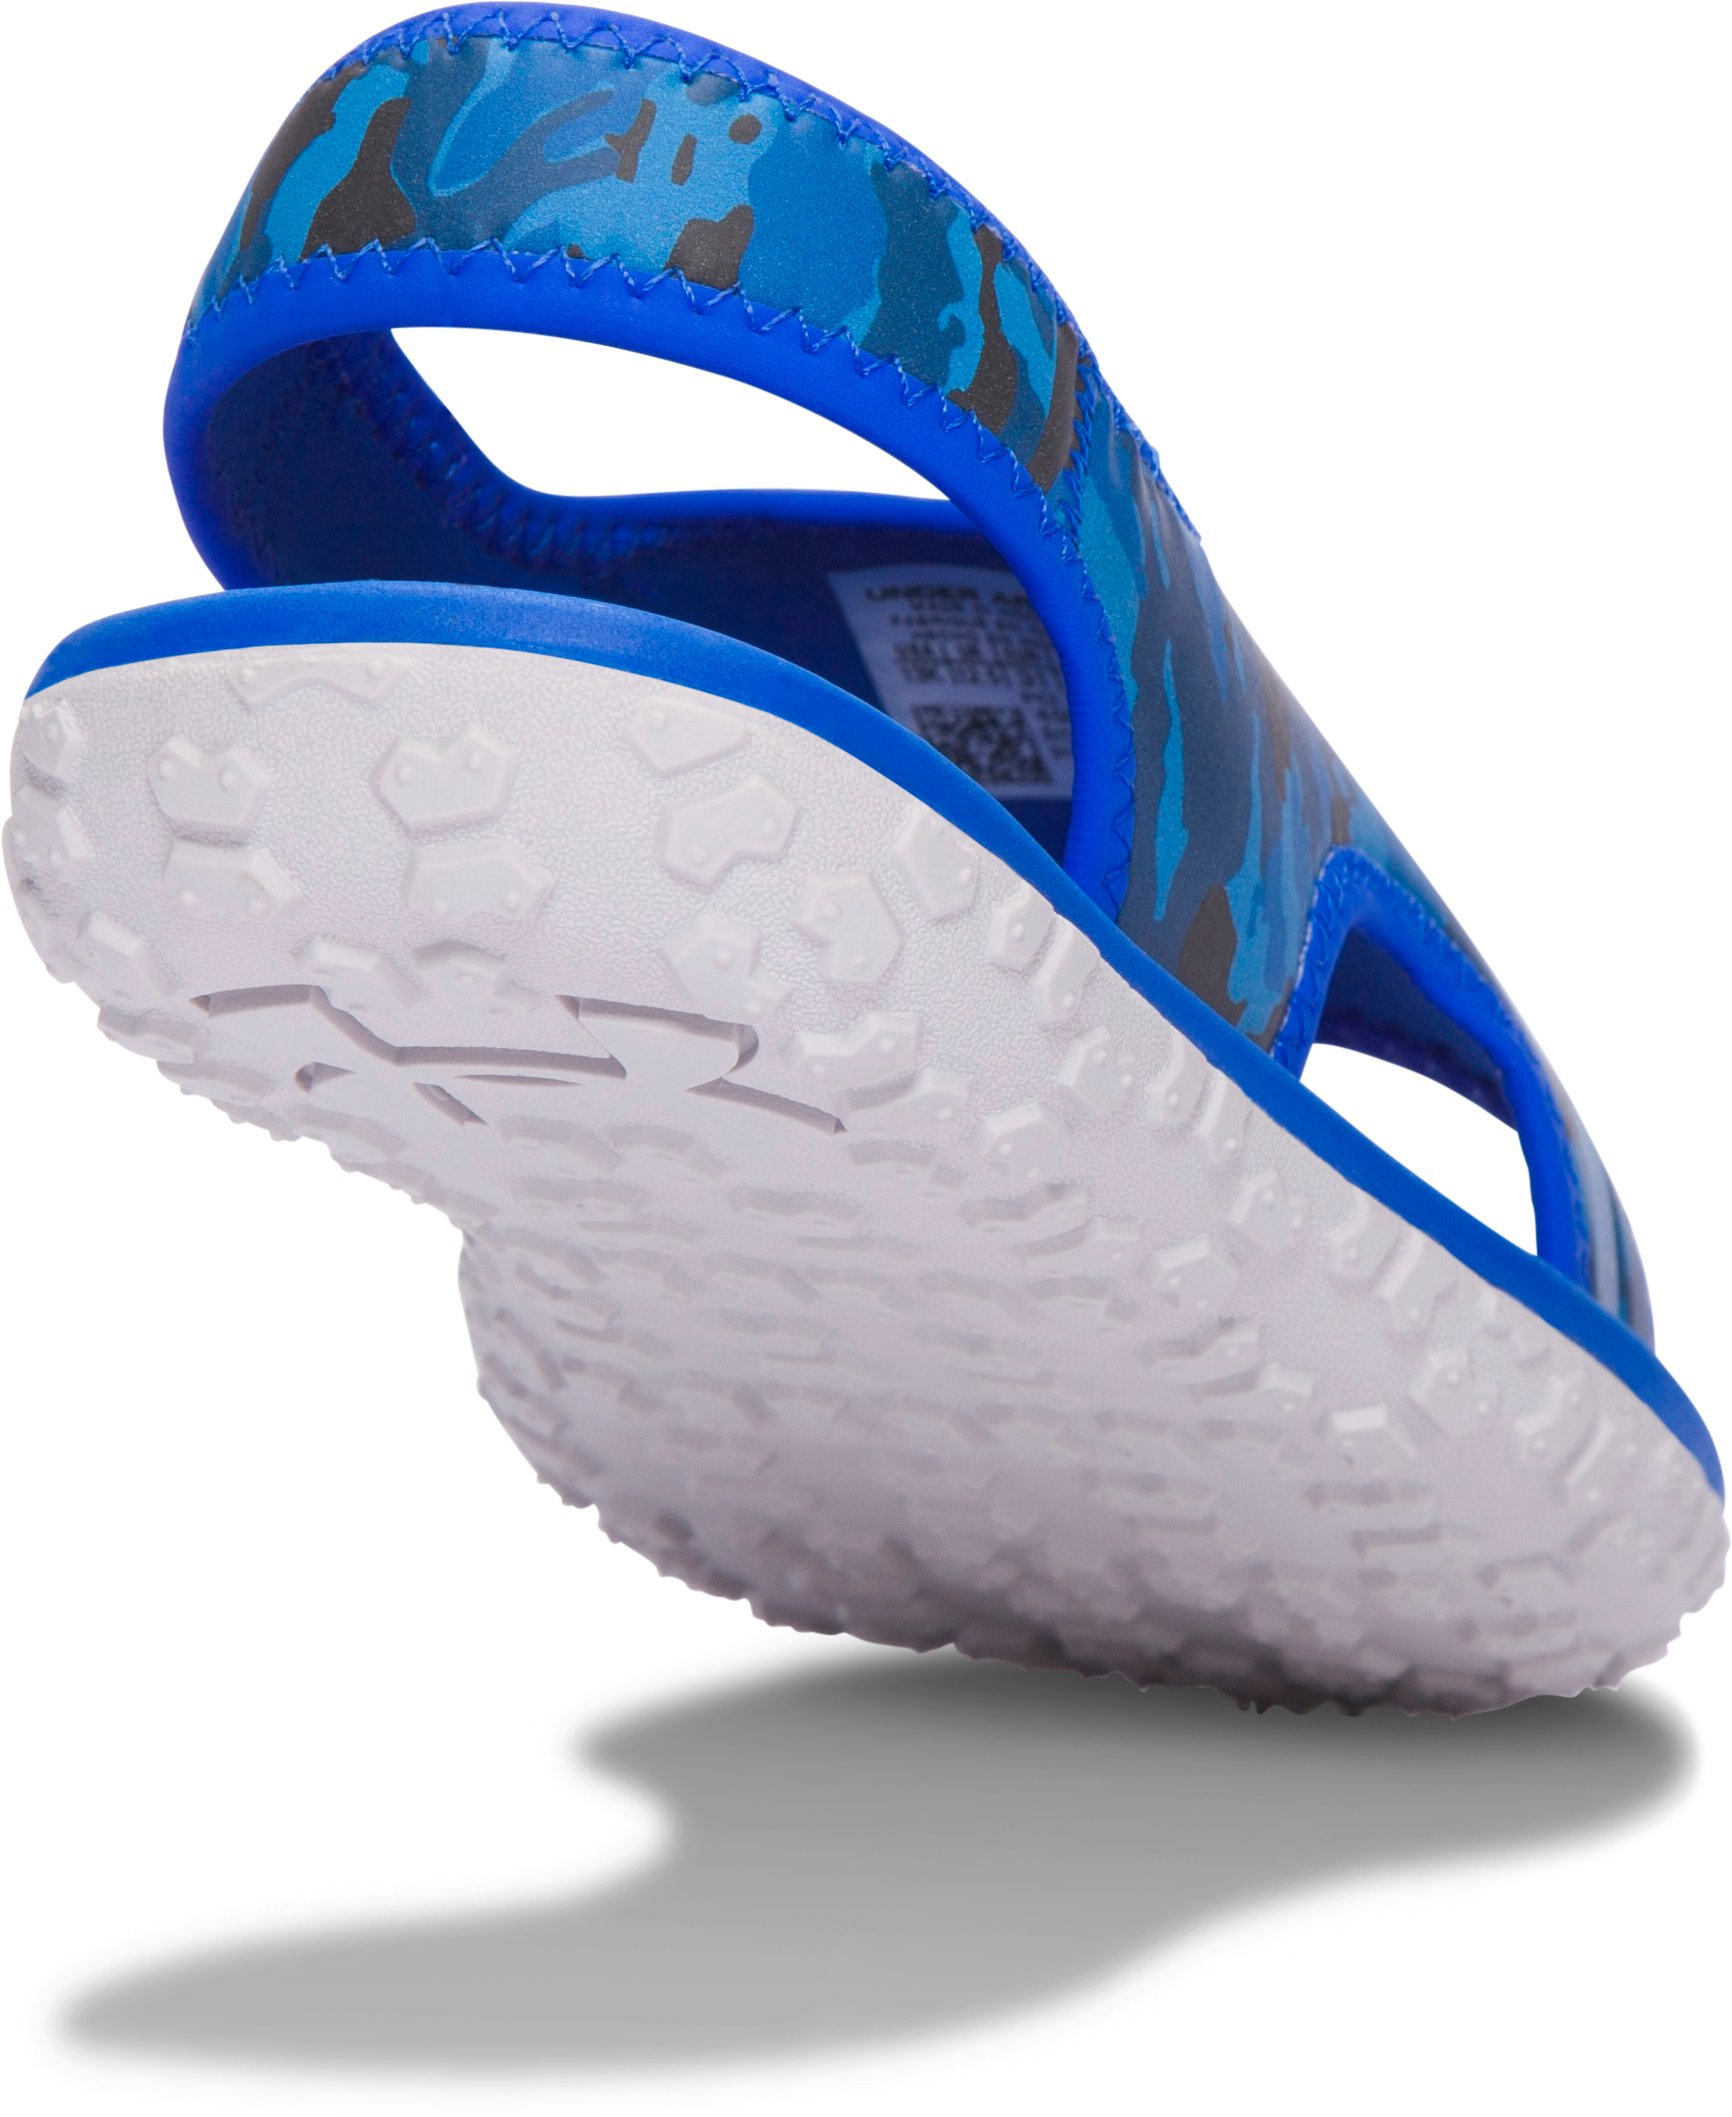 Boys' Pre-School UA Fat Tire Sandals, ULTRA BLUE, undefined